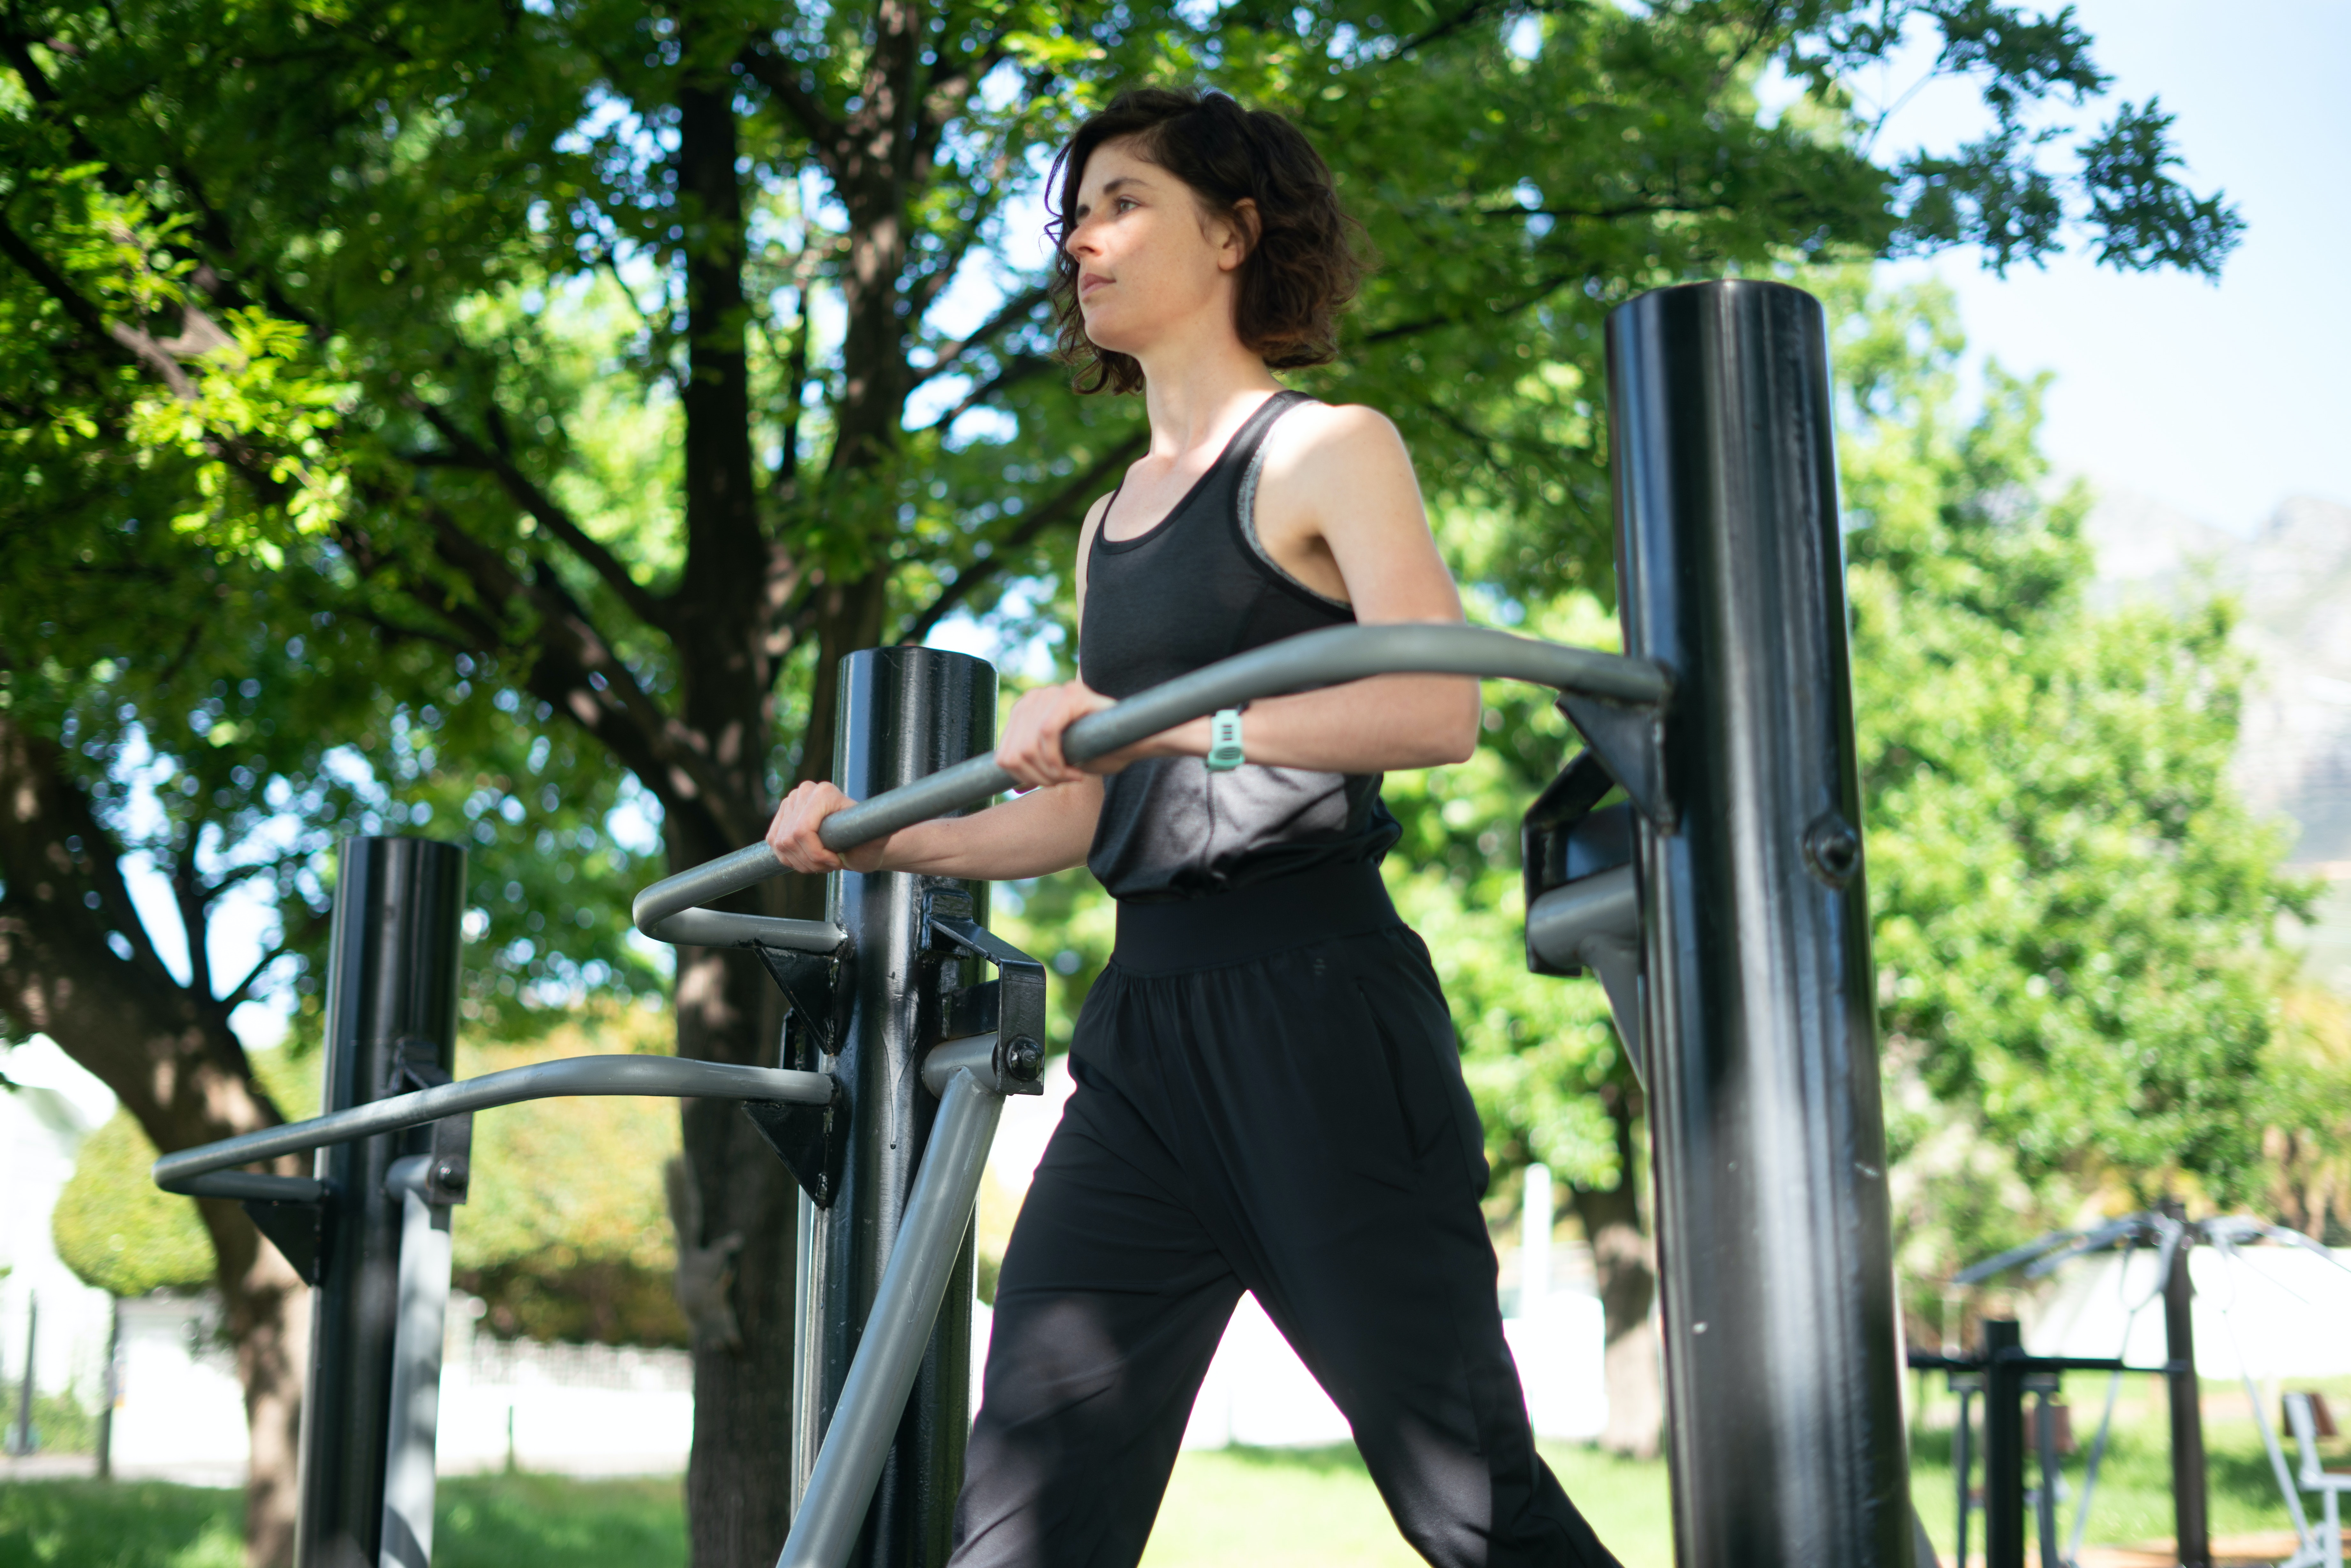 You are currently viewing Outdoor-Fitness am Helmholtzplatz im Berliner Bezirk Pankow